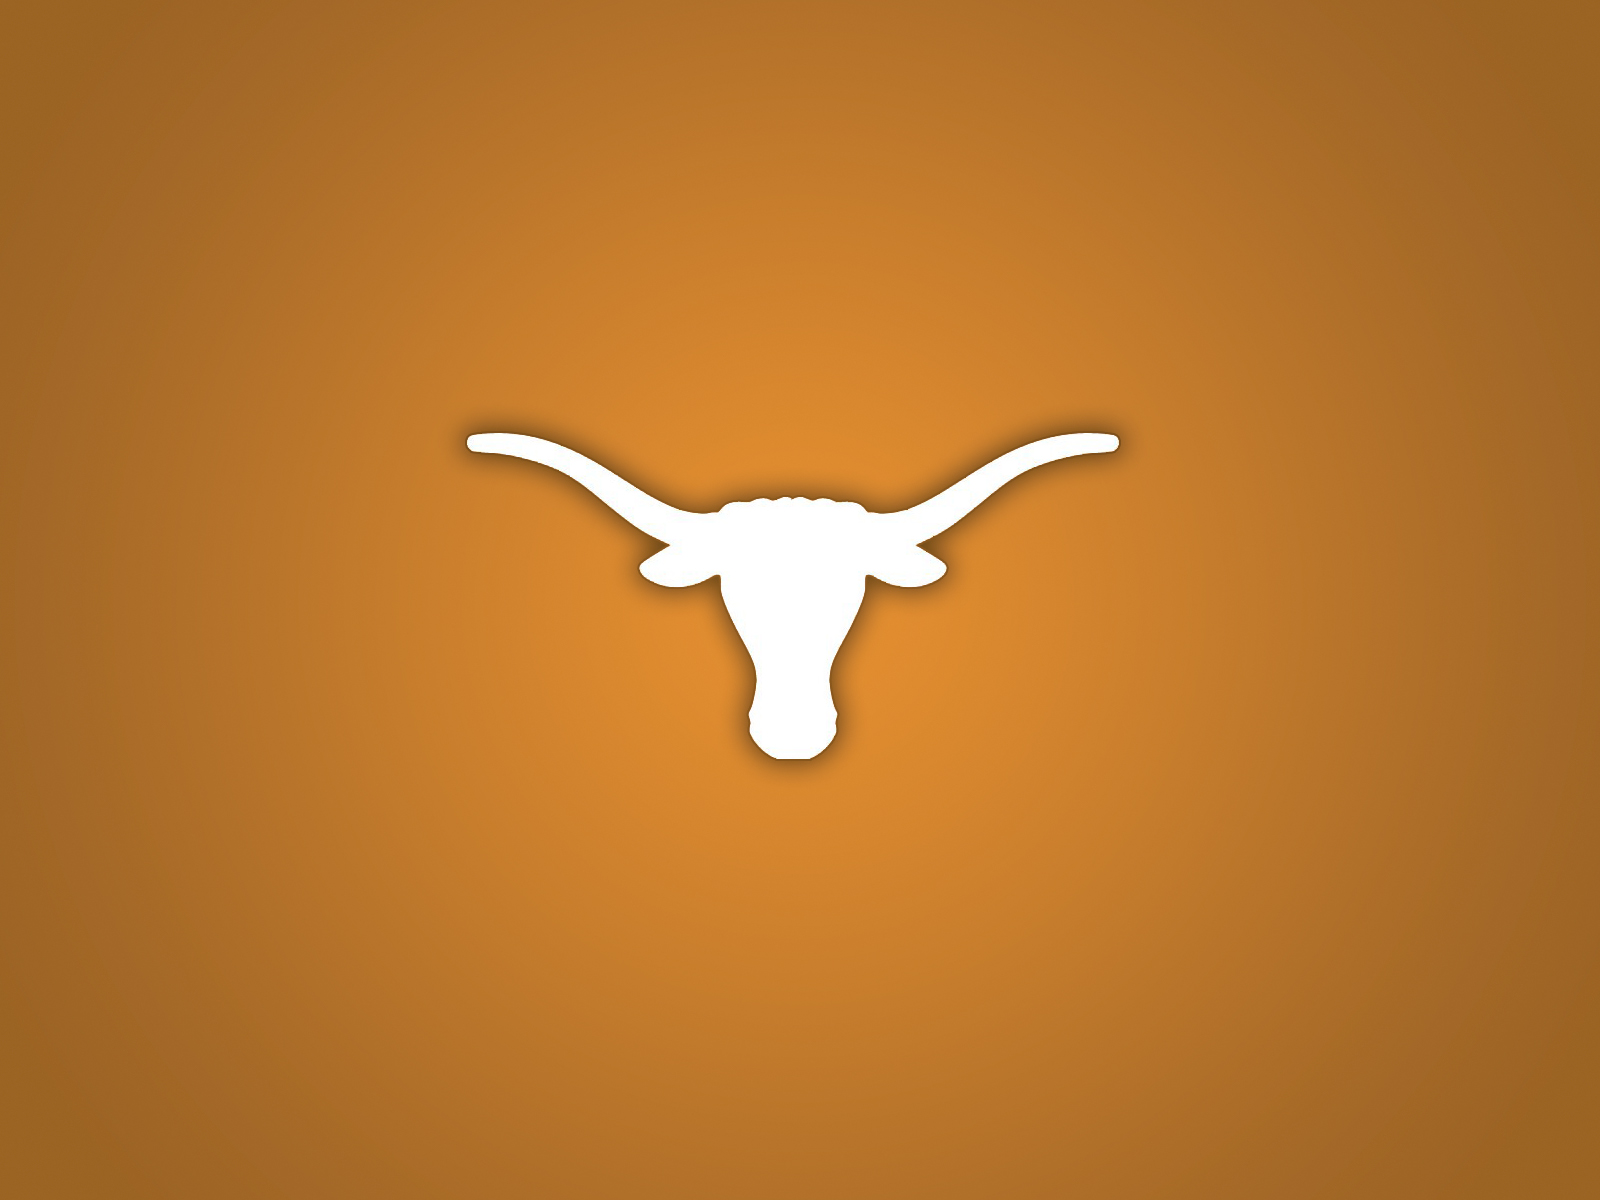 Texas Longhorns   Simple by Macchiavellian 1600x1200